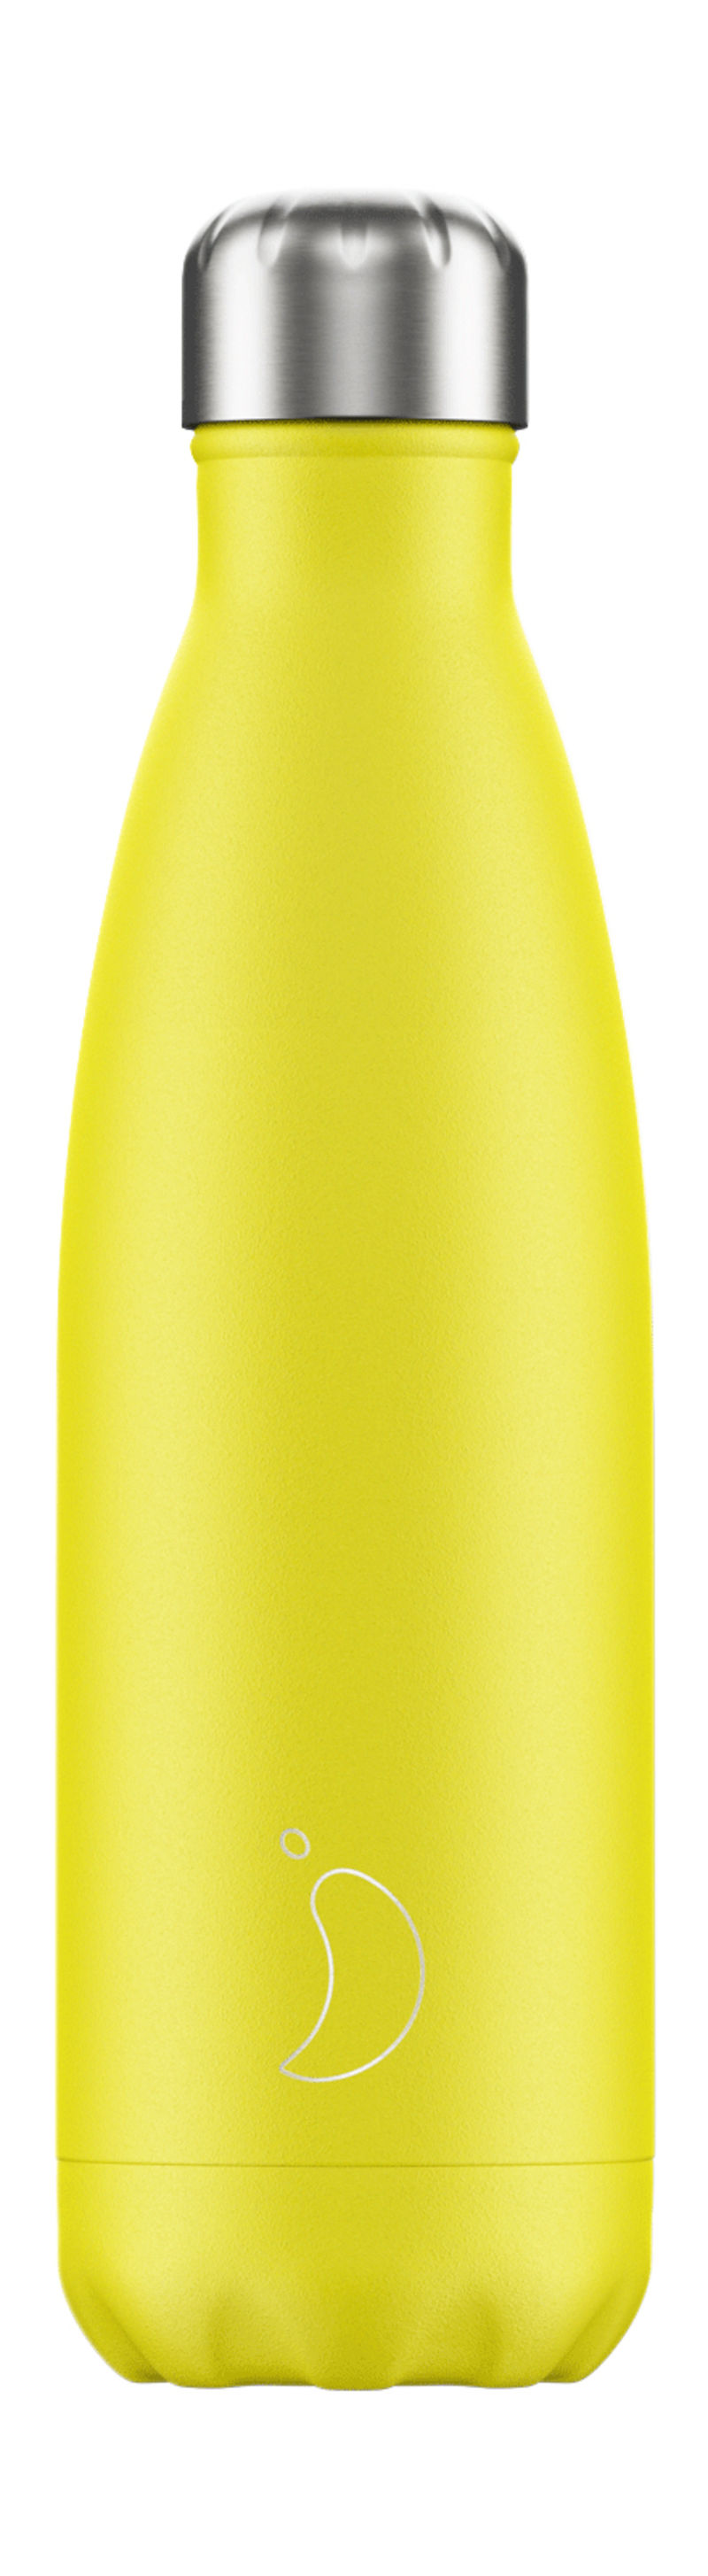 BOTELLA INOX AMARILLO NEON 500ML